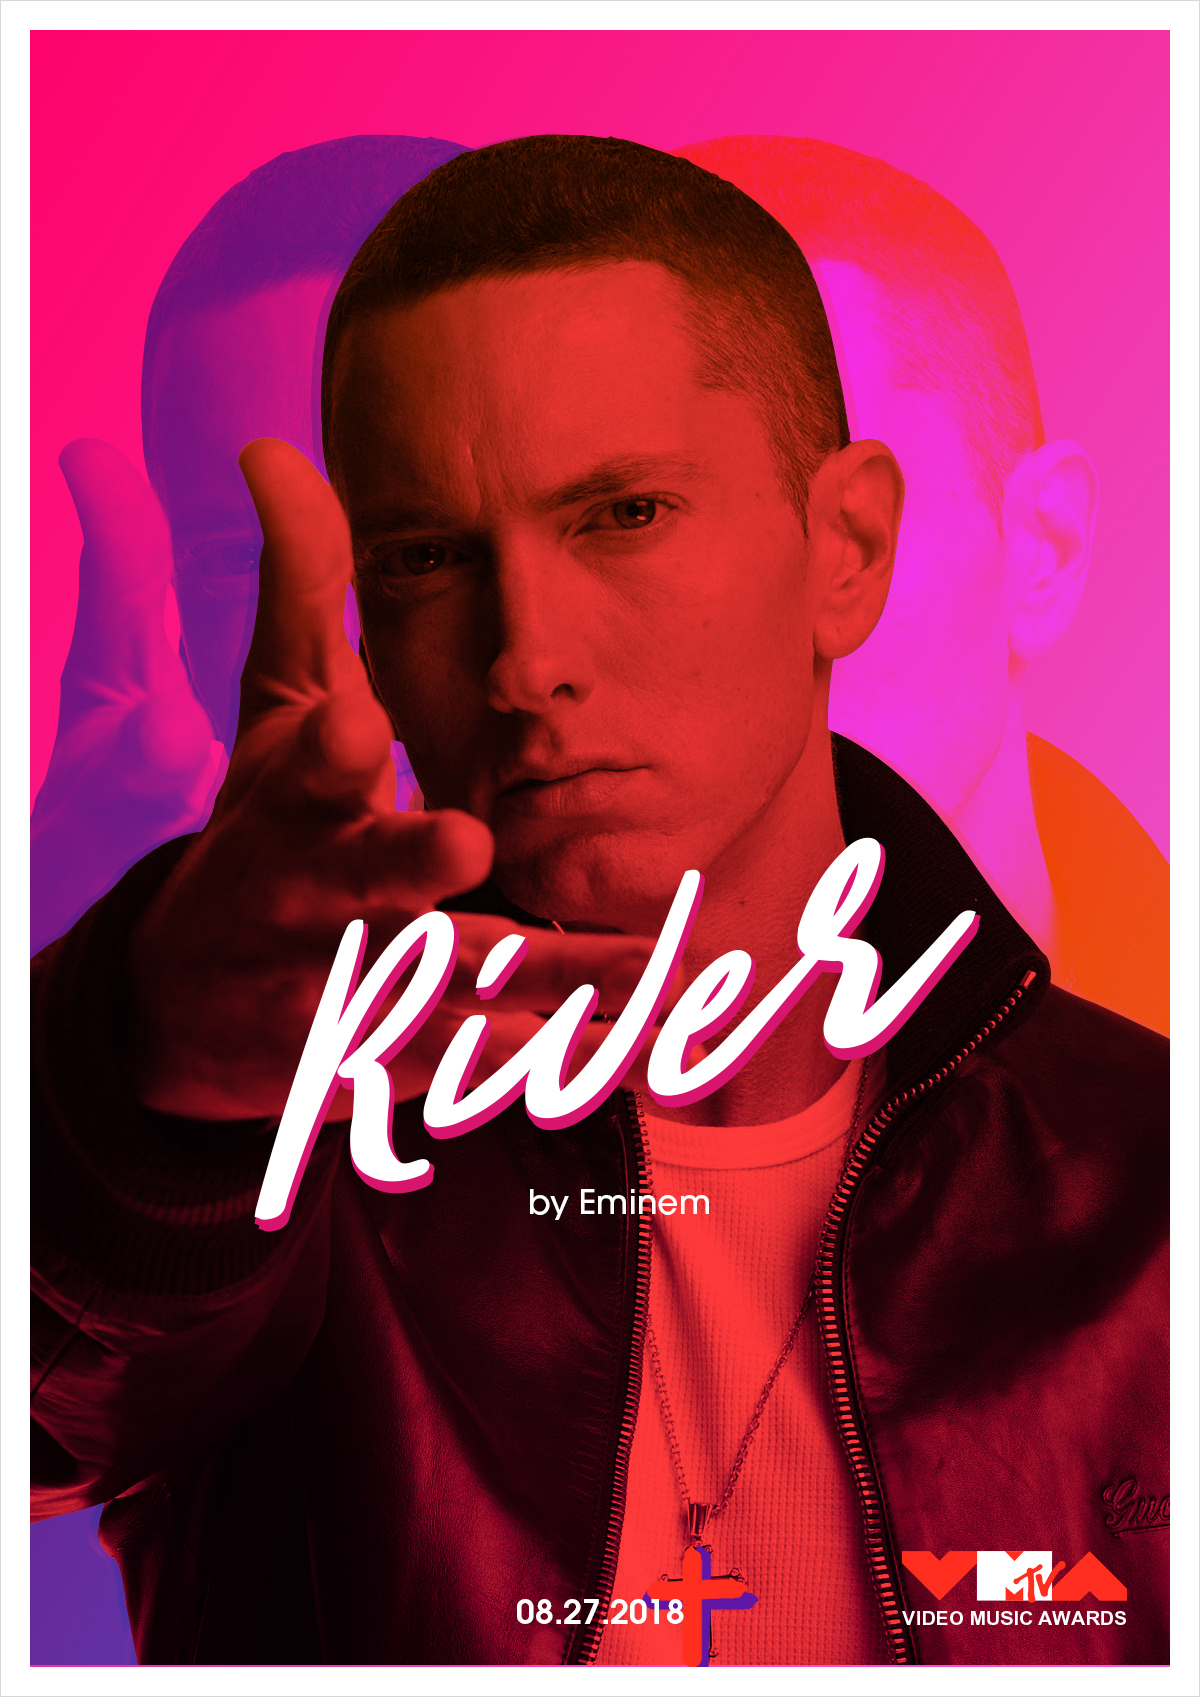 Bright and Colourful MTV Video Music Awards Posters